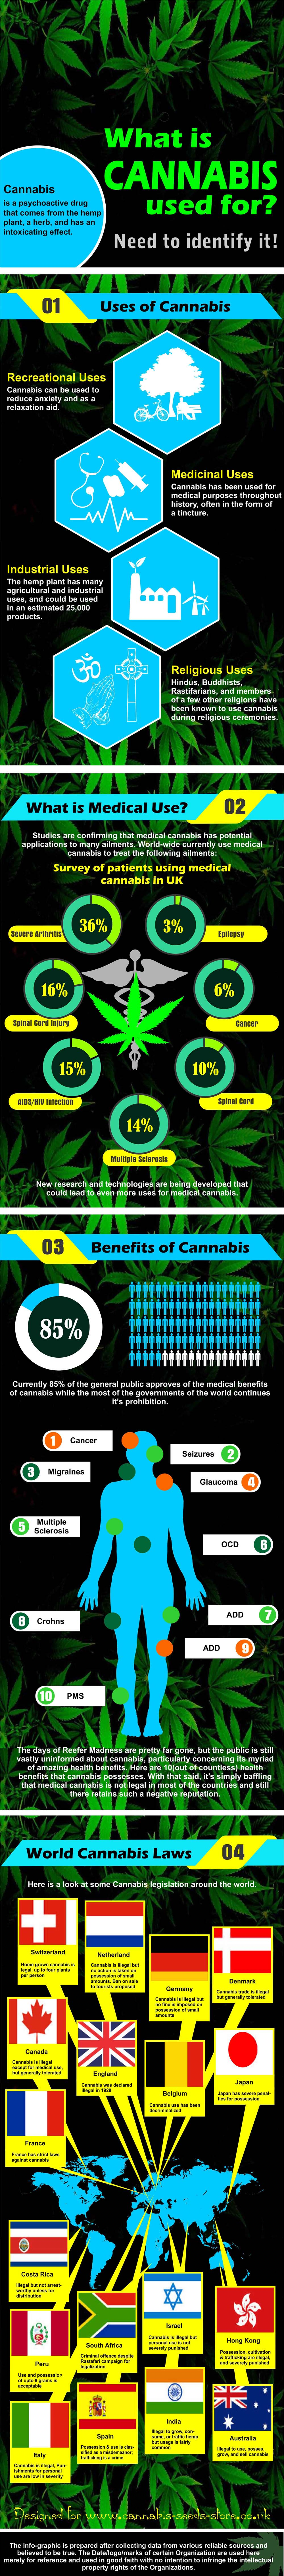 What Is Cannabis Used For?